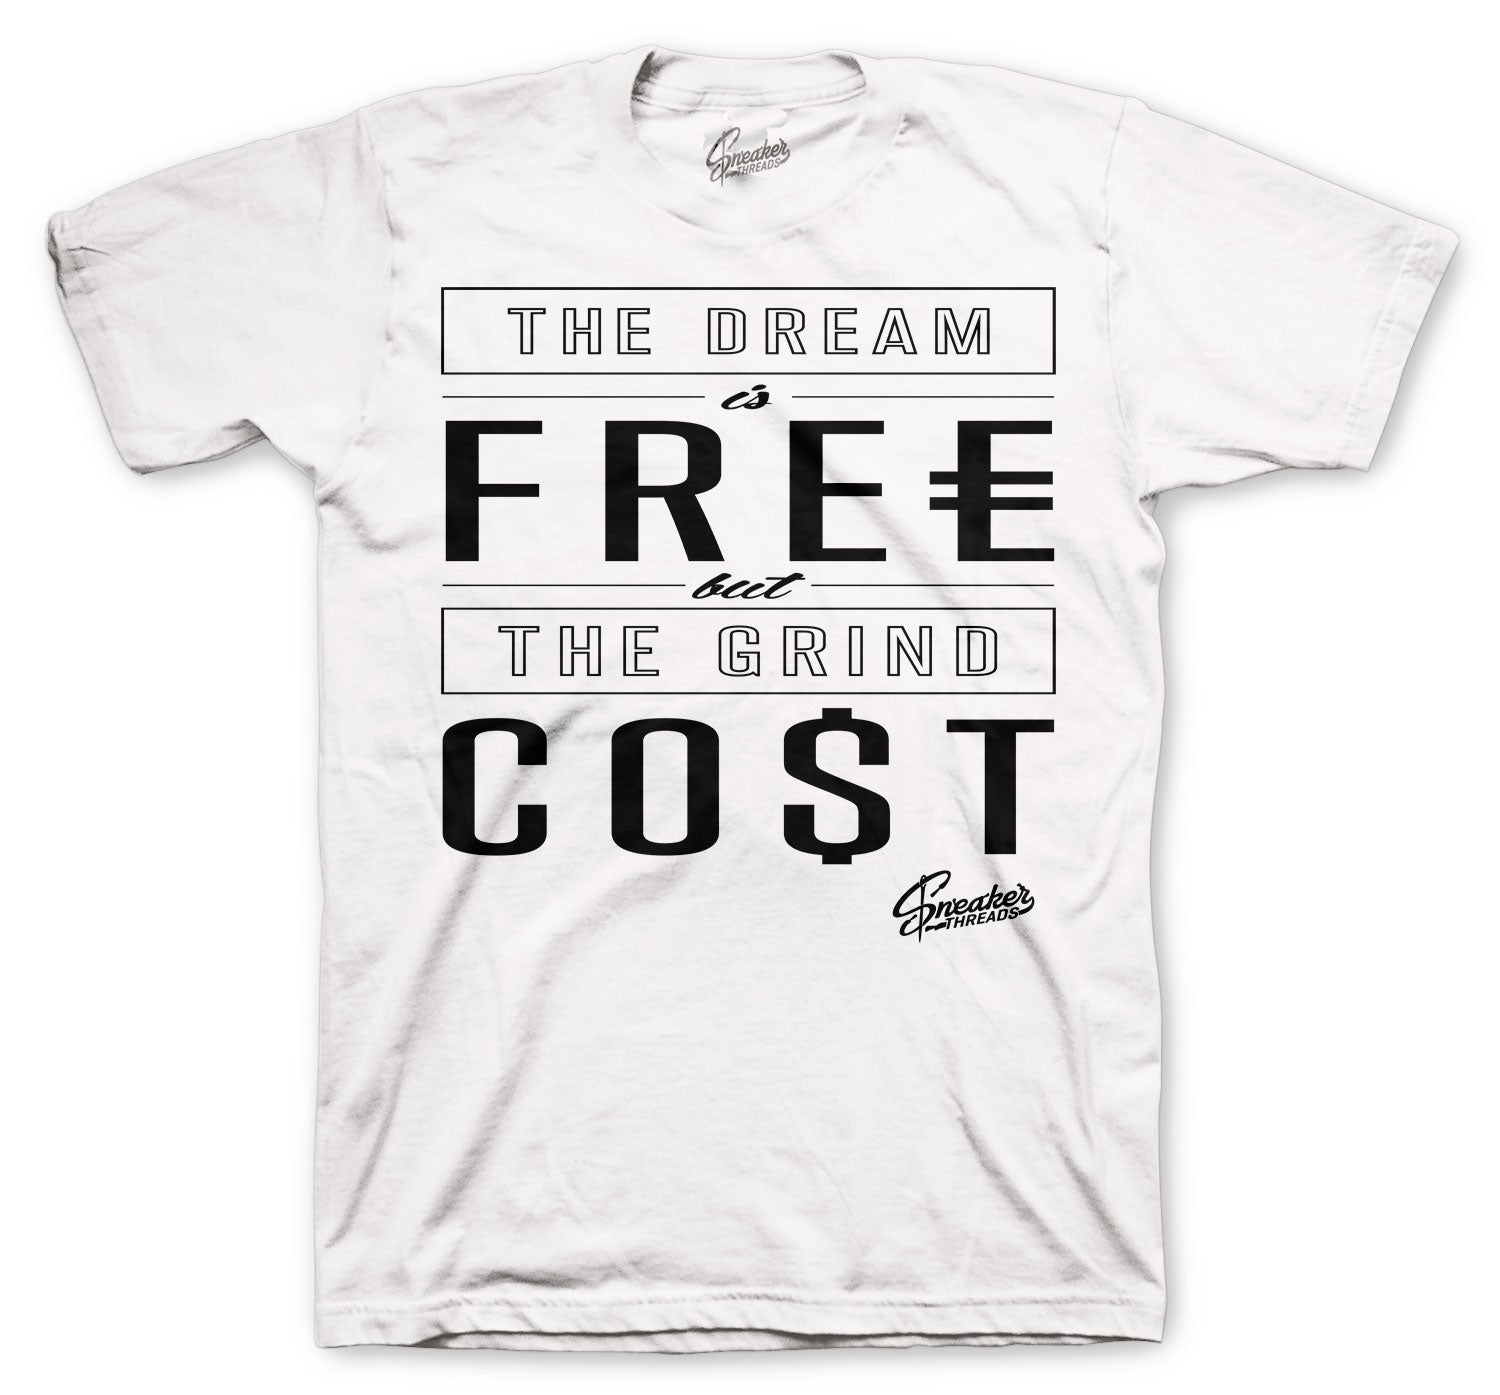 Foam Pro White/Black Shirt - Cost - White